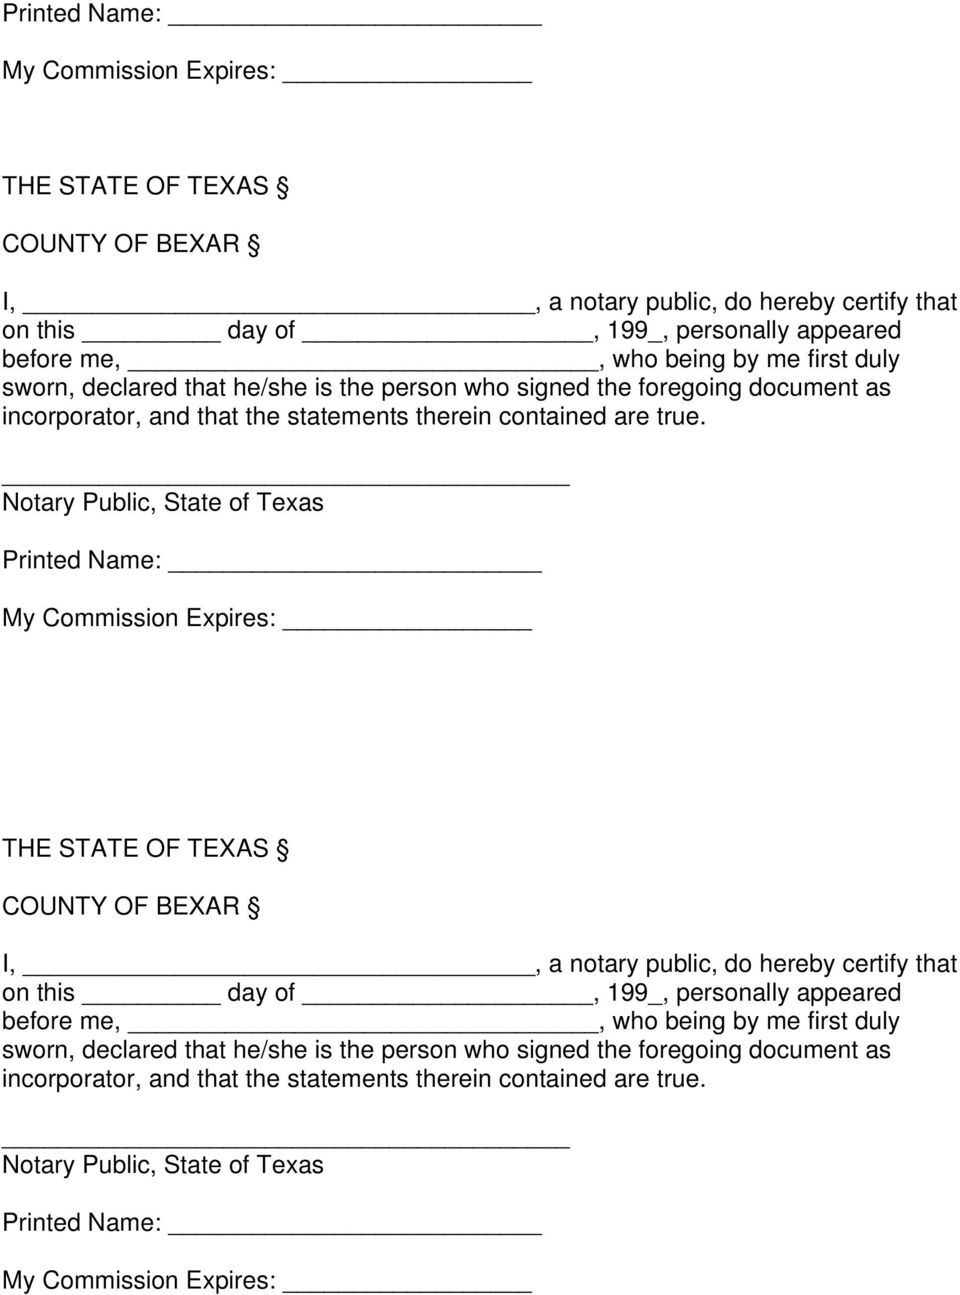 Notary Public, State of Texas   Notary Public, State of Texas Printed Name: My Commission Expires: